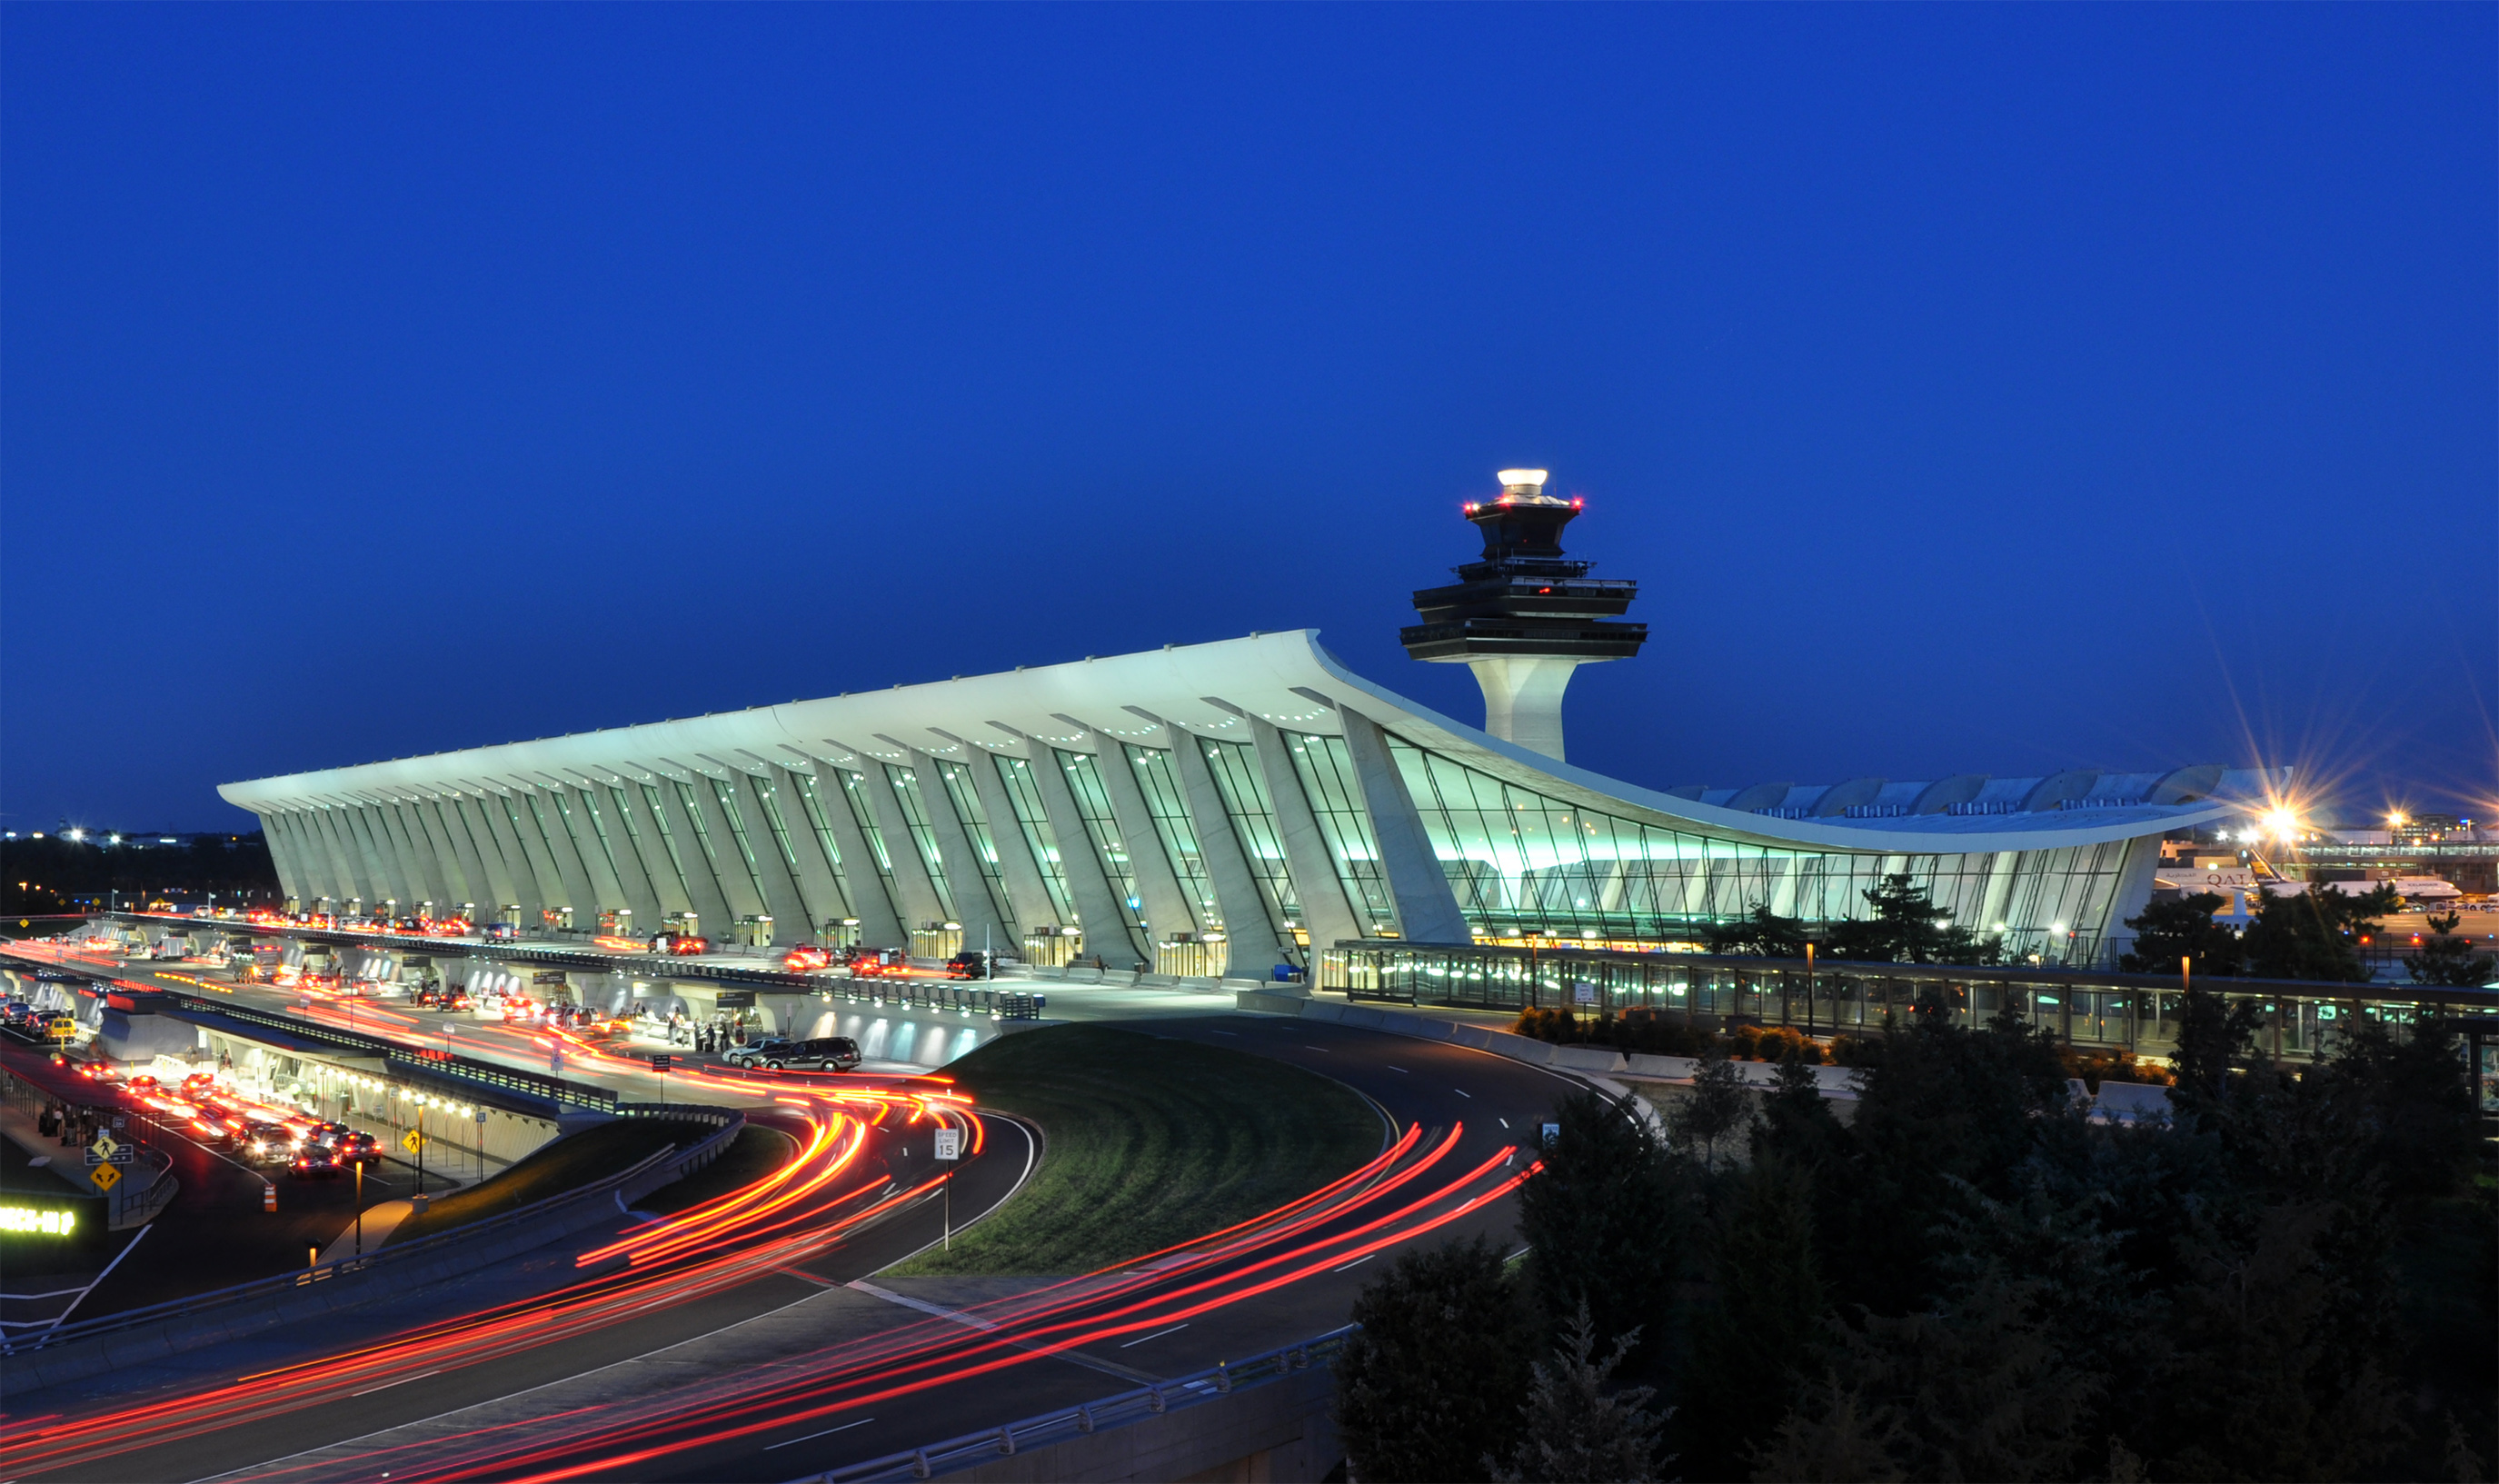 Hotels Around Reagan National Airport